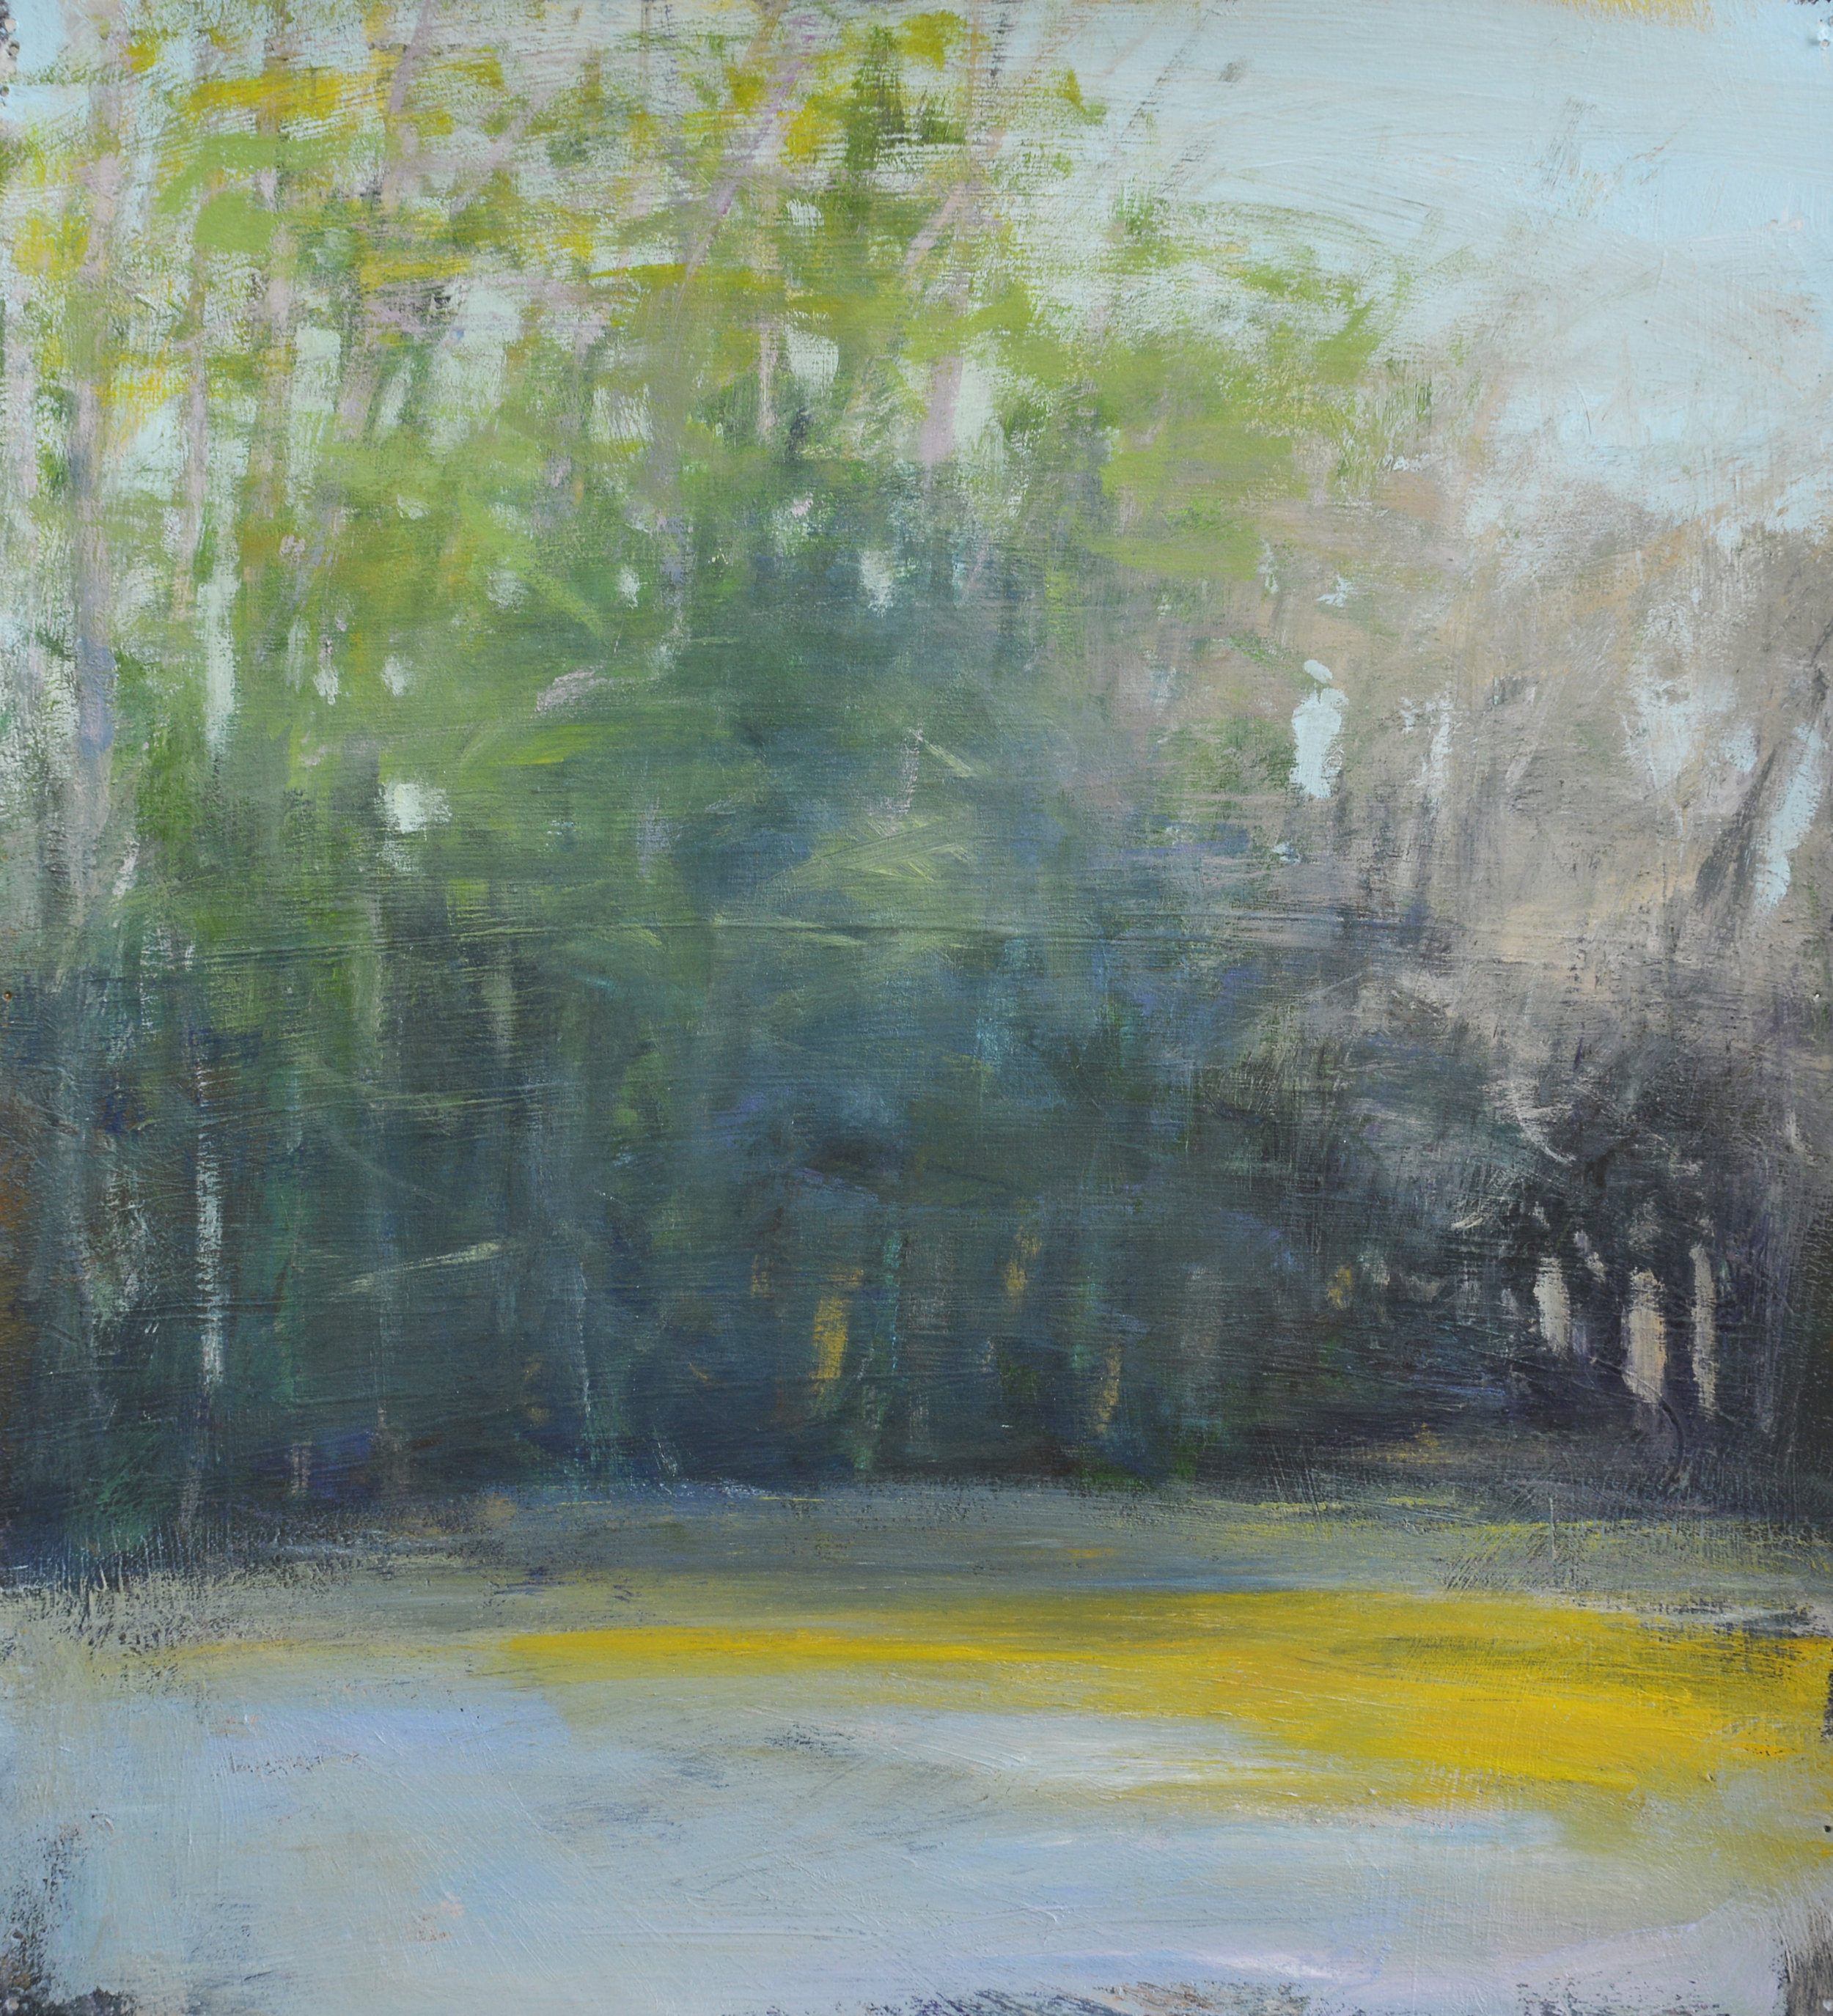 Field Trees (sold)